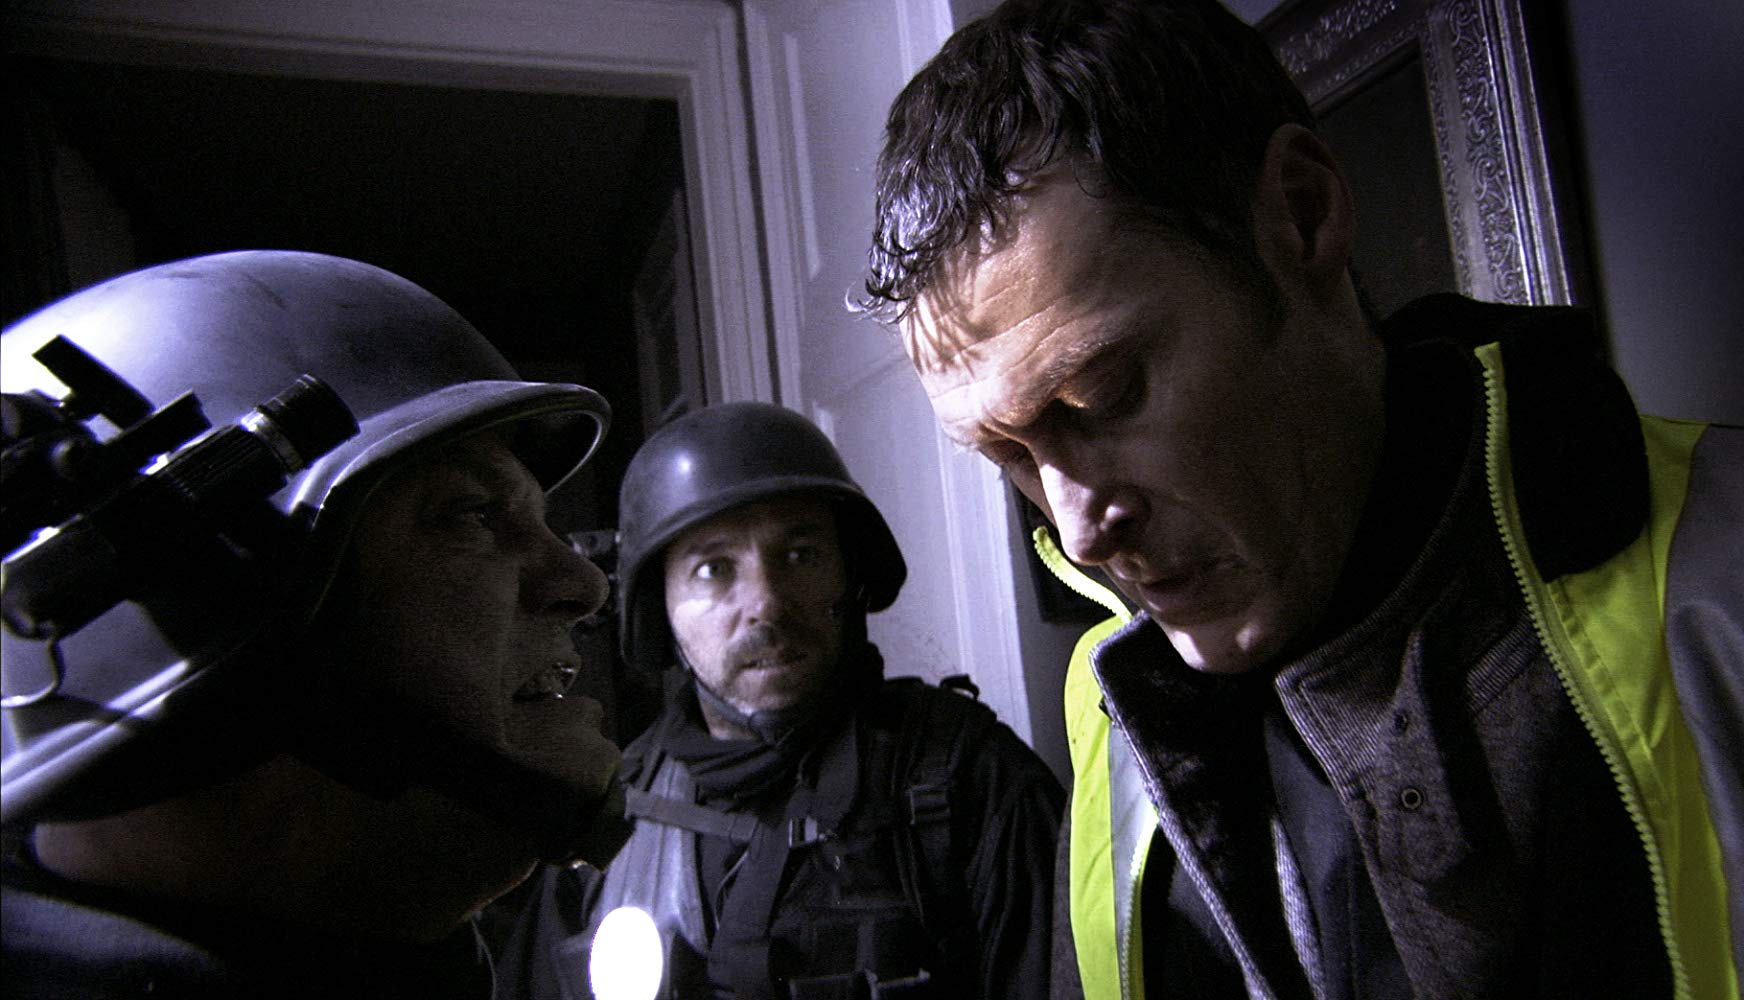 (l to r) Soldiers Oscar Sanchez Zafra and Ariel Casas and Dr Owen (Ariel Casas) enter the apartment building in [Rec] 2 (2009)